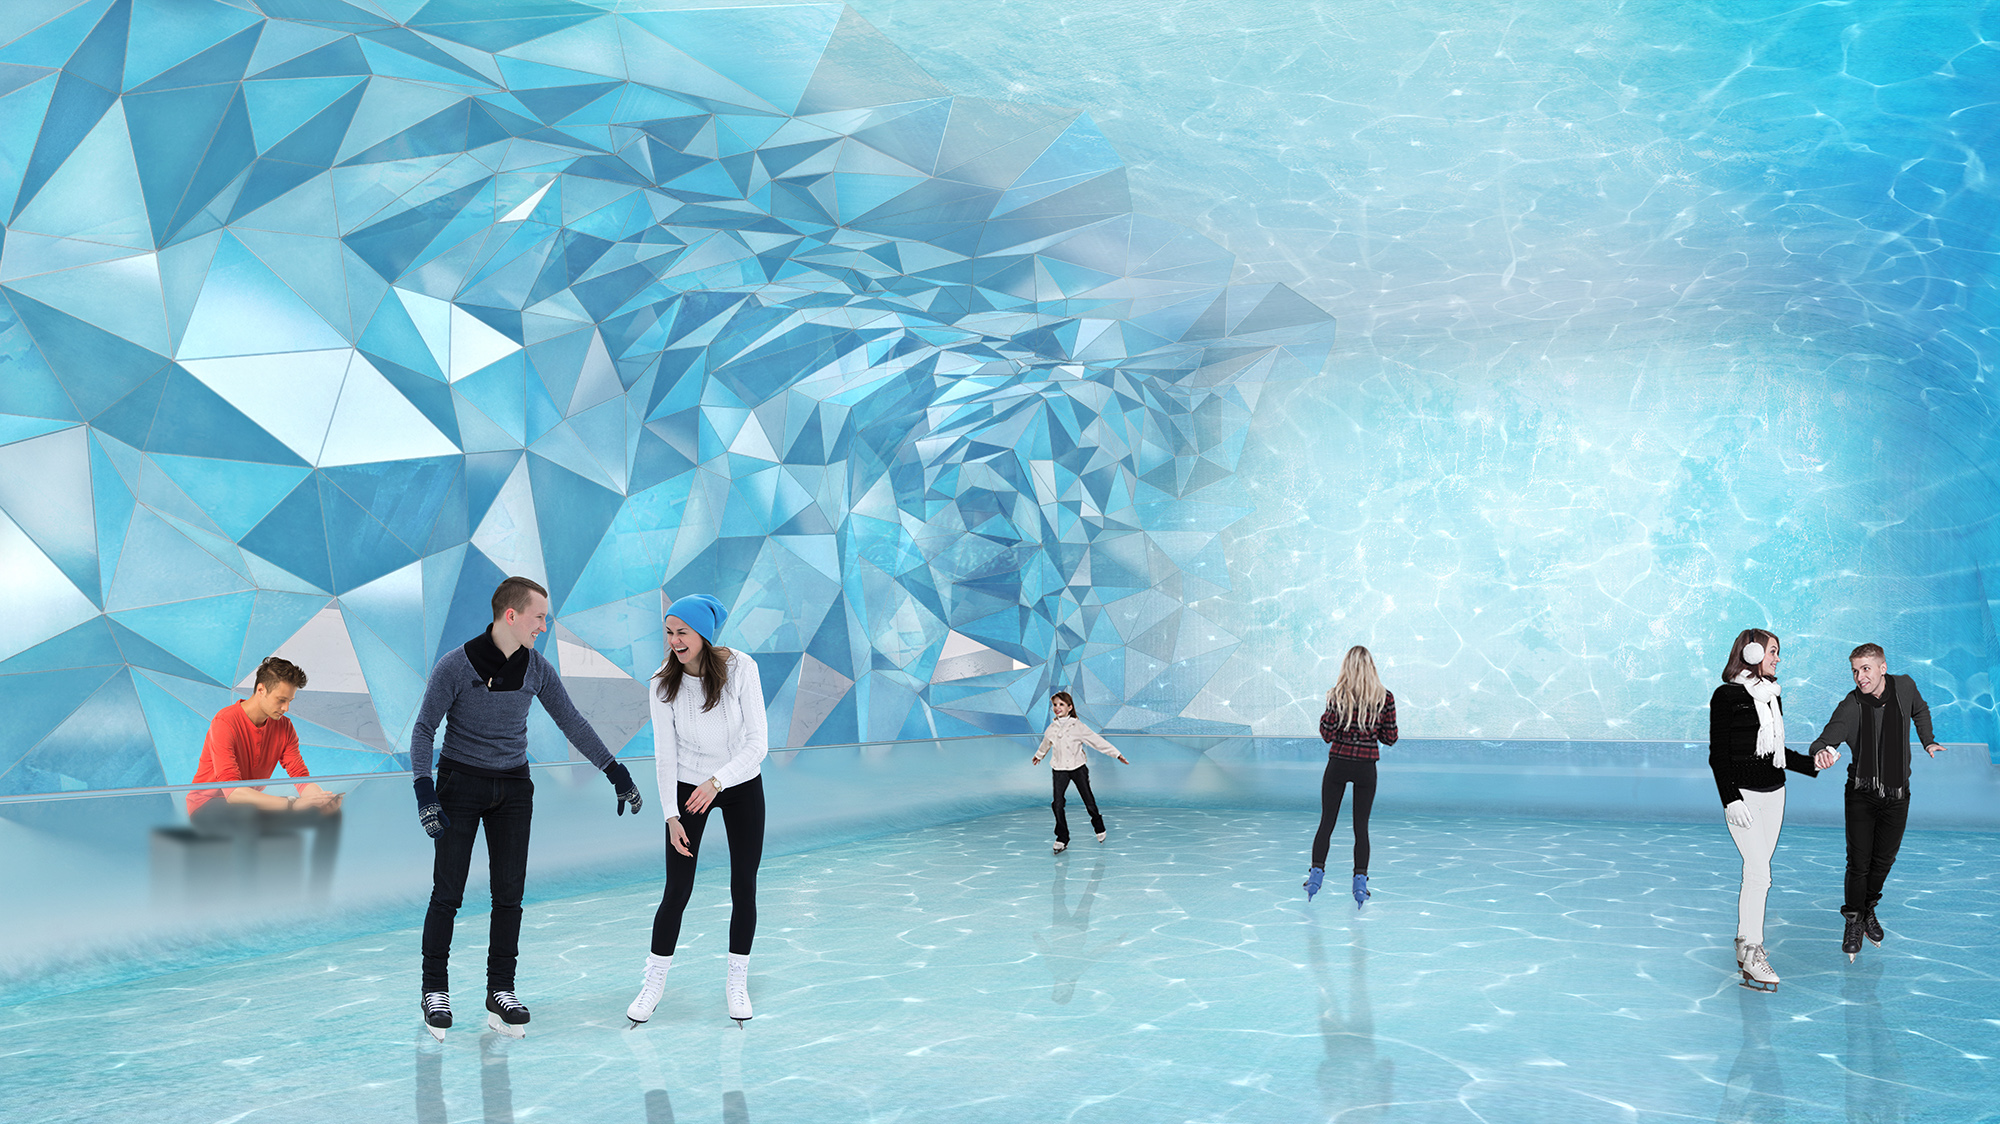 Rendering of an indoor ice skating rink, modeled after an underwater cave